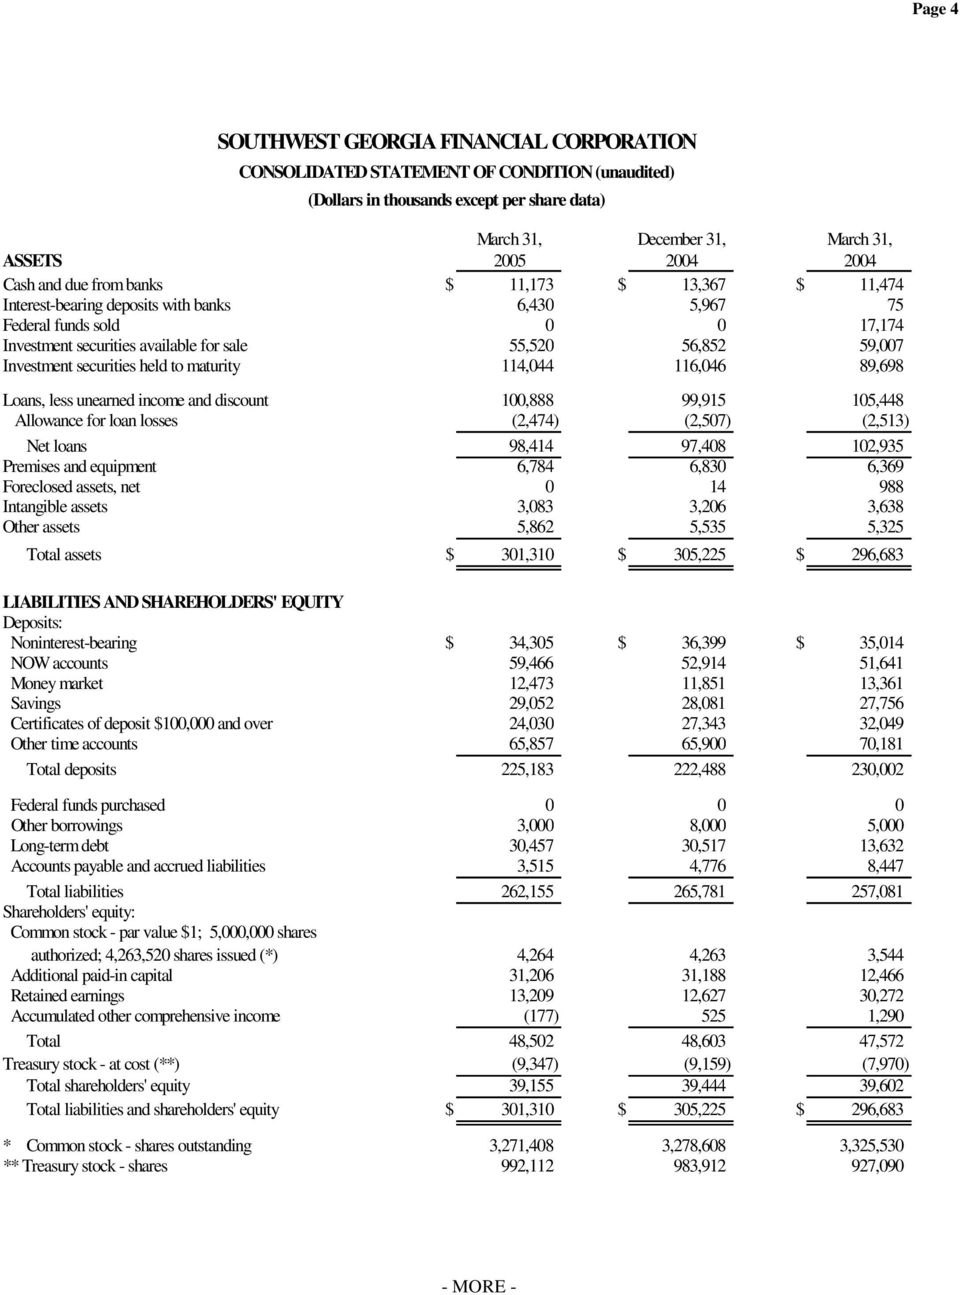 Investment securities held to maturity 114,044 116,046 89,698 Loans, less unearned income and discount 100,888 99,915 105,448 Allowance for loan losses (2,474) (2,507) (2,513) Net loans 98,414 97,408